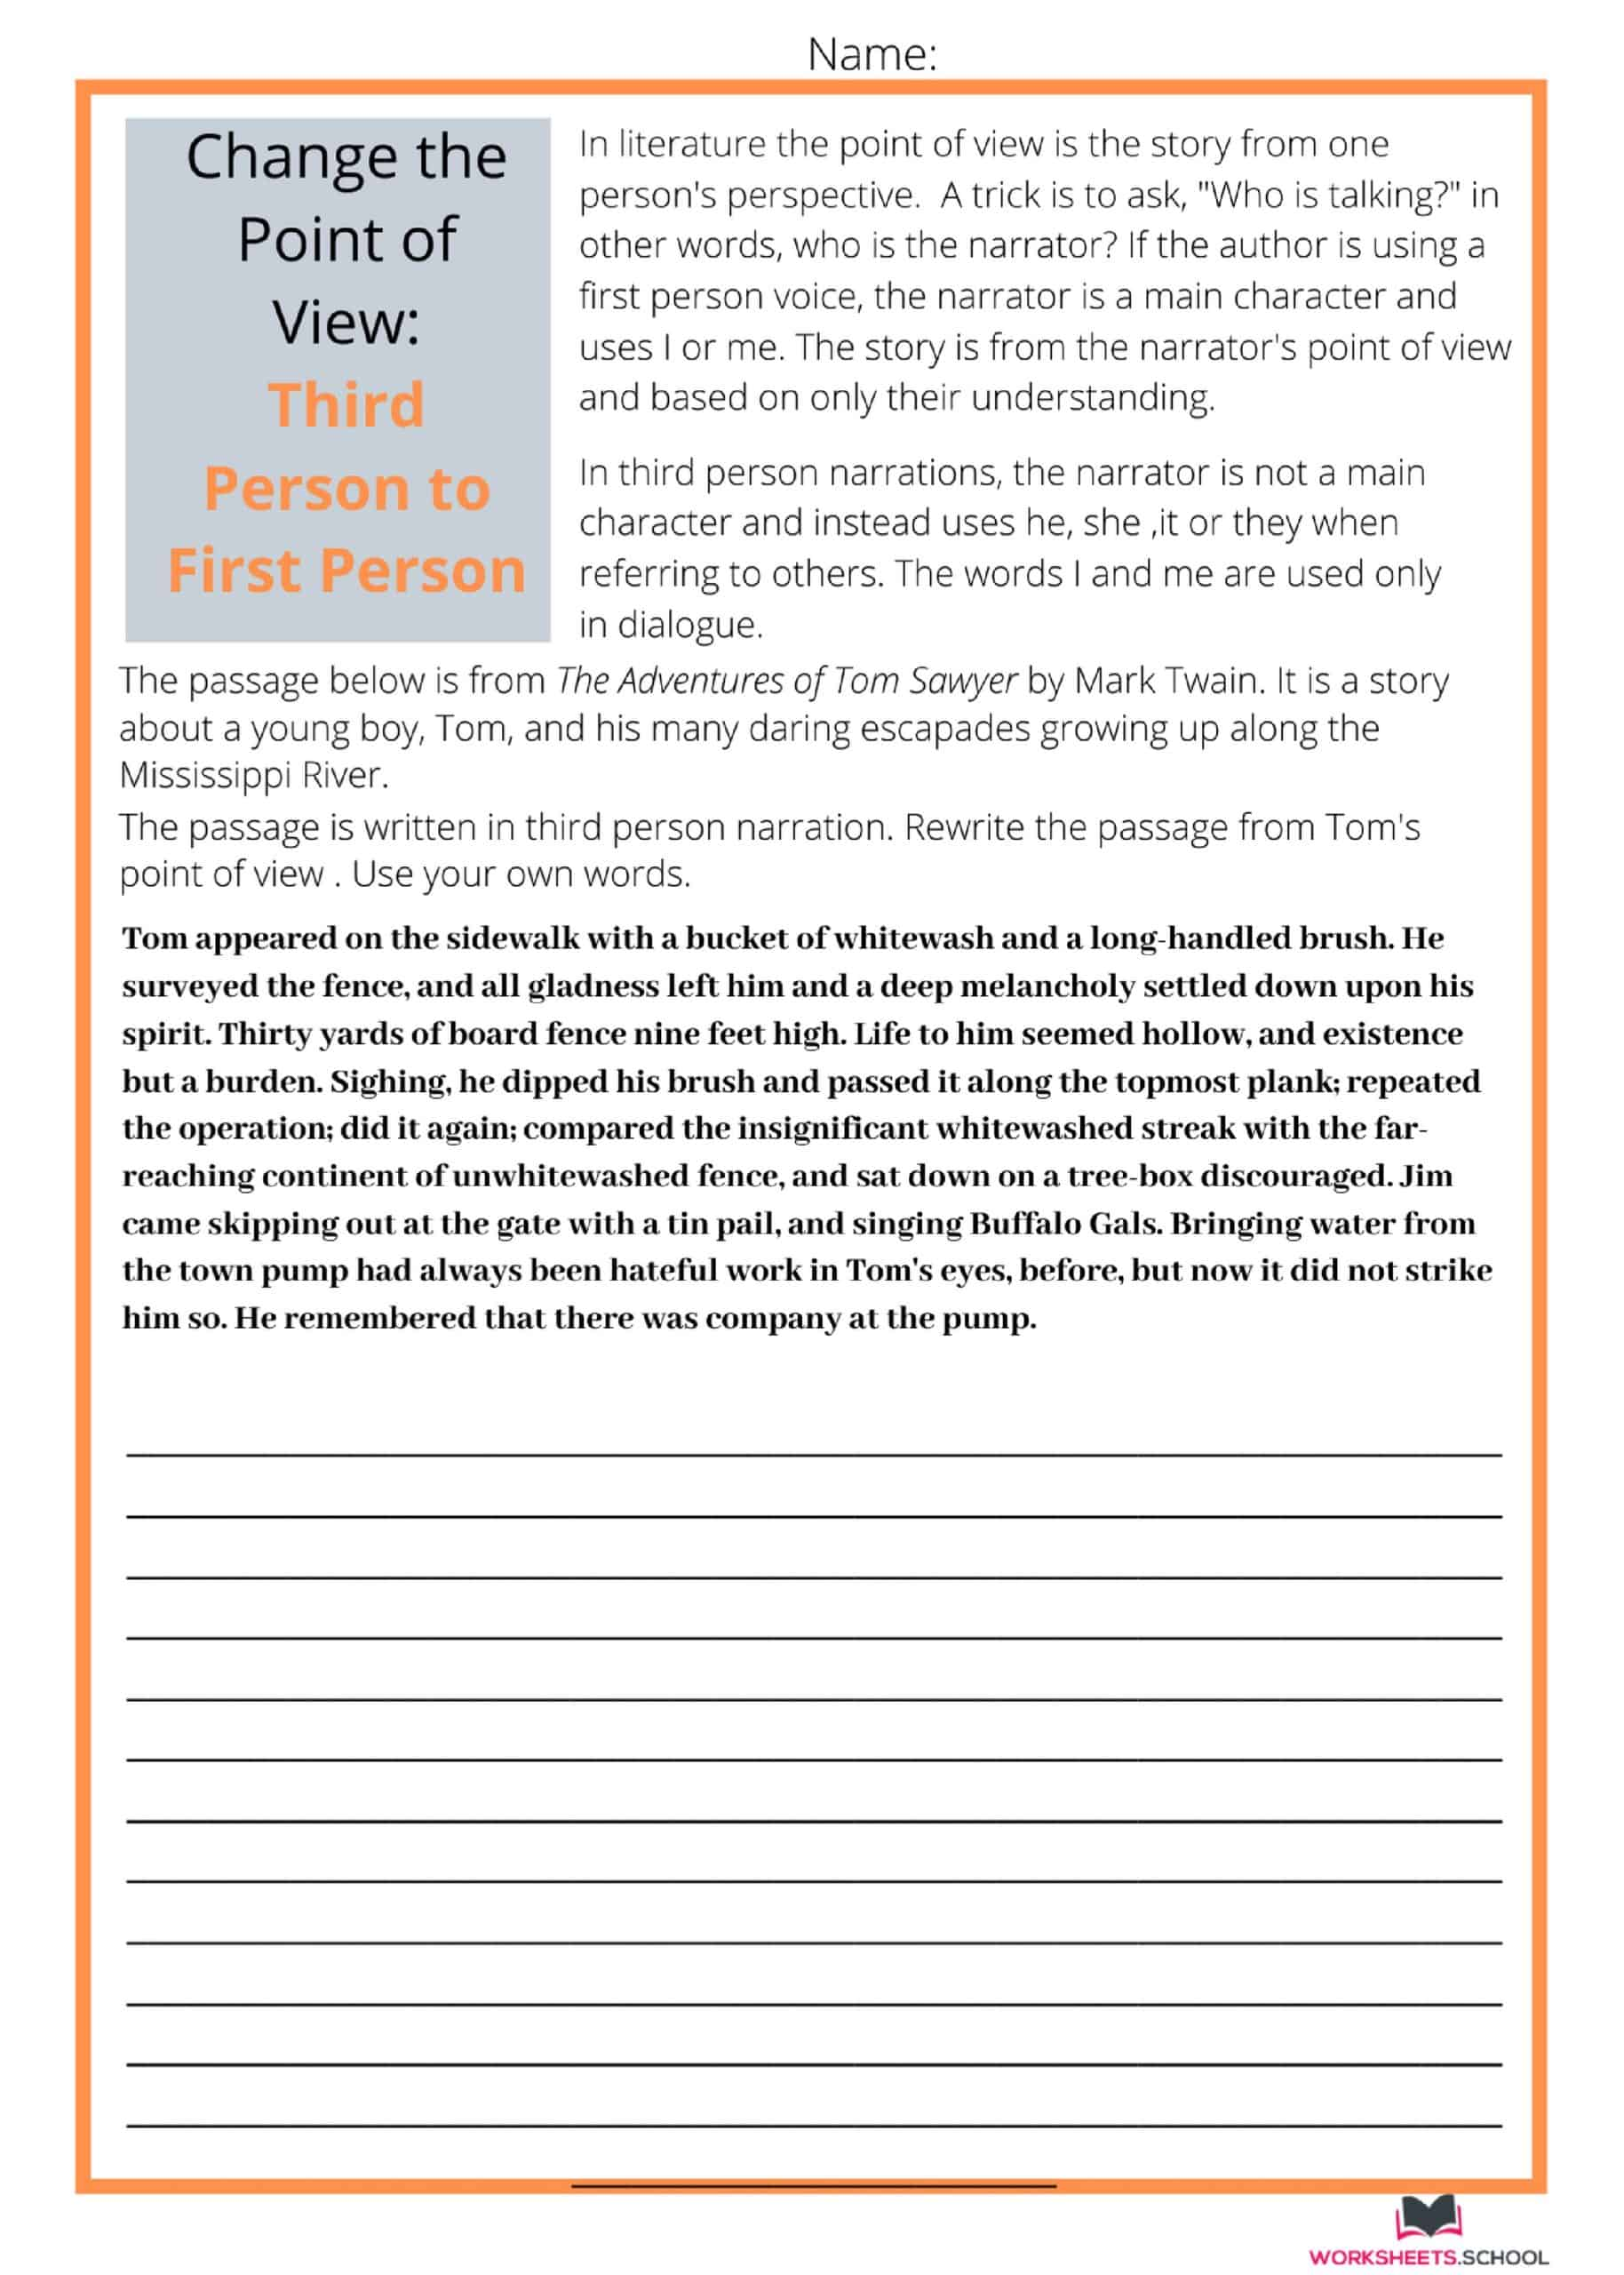 Change the Point of View Worksheet - TP to FP-Tom Sawyer